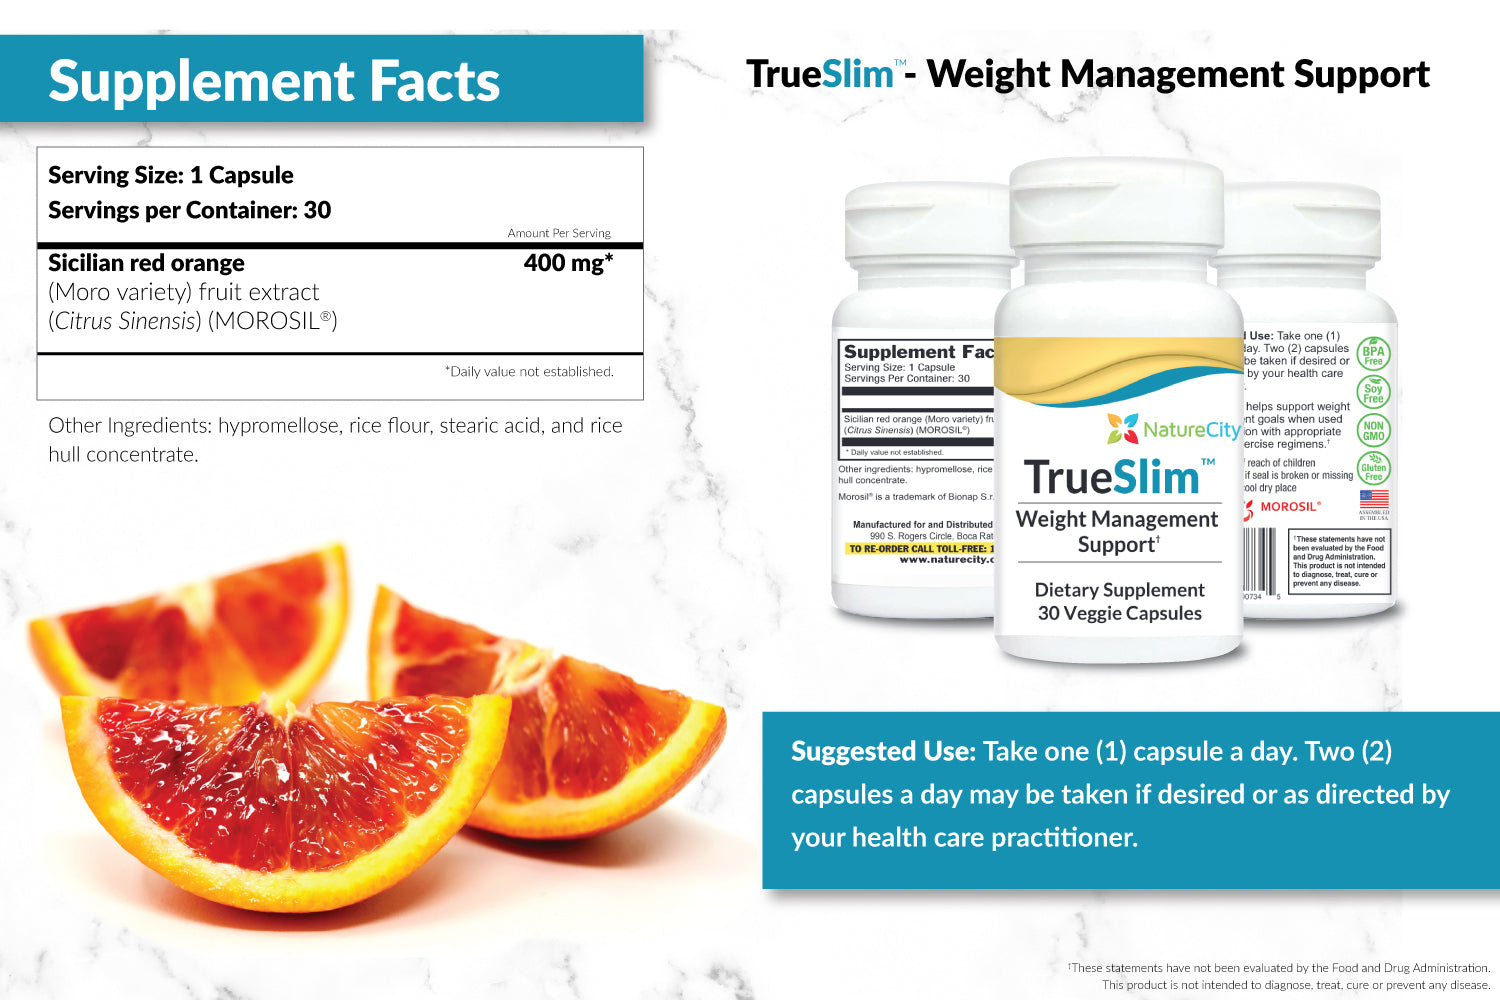 TrueSlim Weight Loss Support Supplement Facts and Suggested Uses